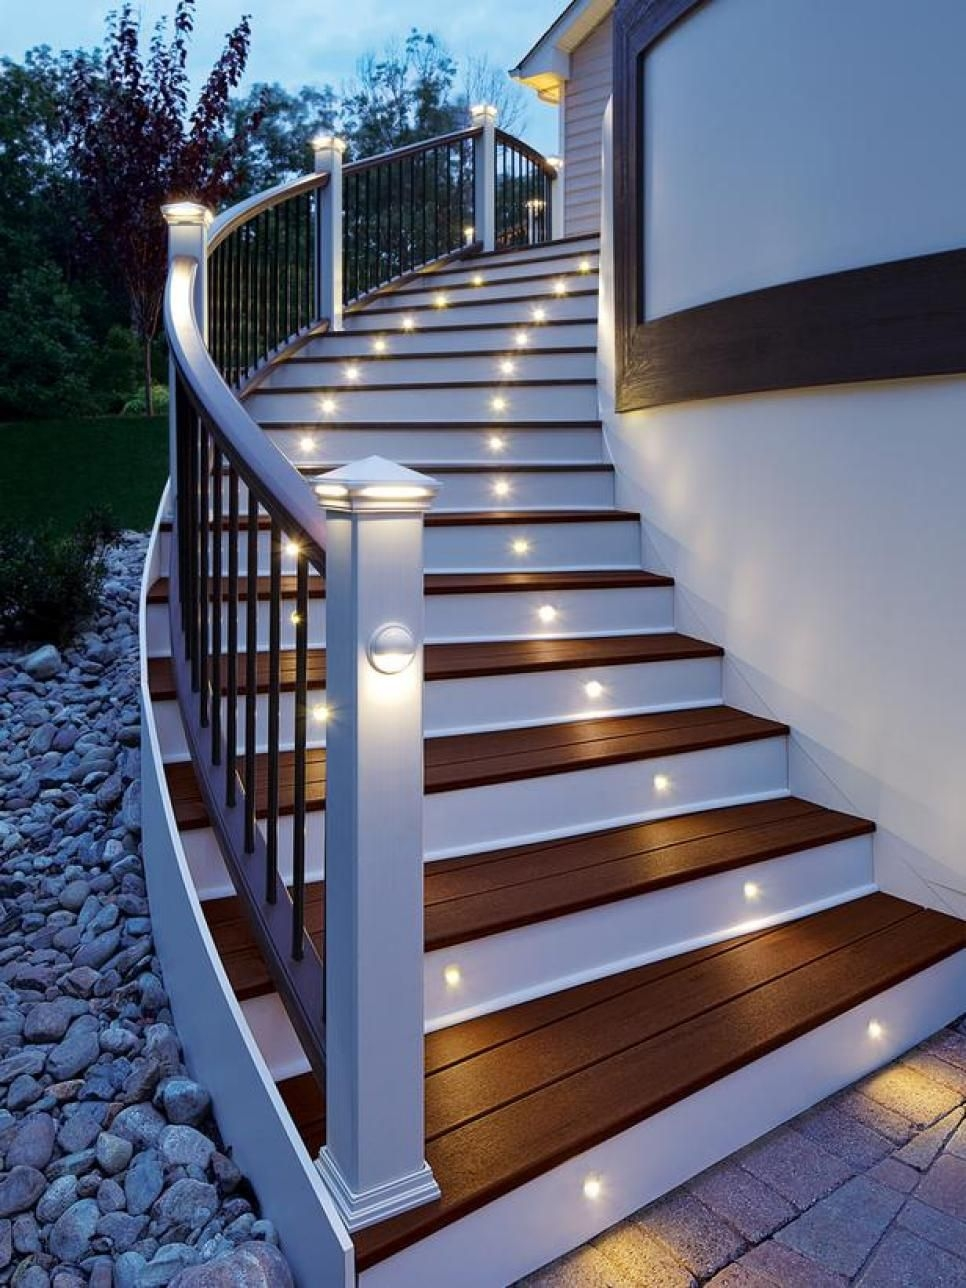 8 Outdoor Staircase Ideas Hgtv Pinterest Stairs Outdoor